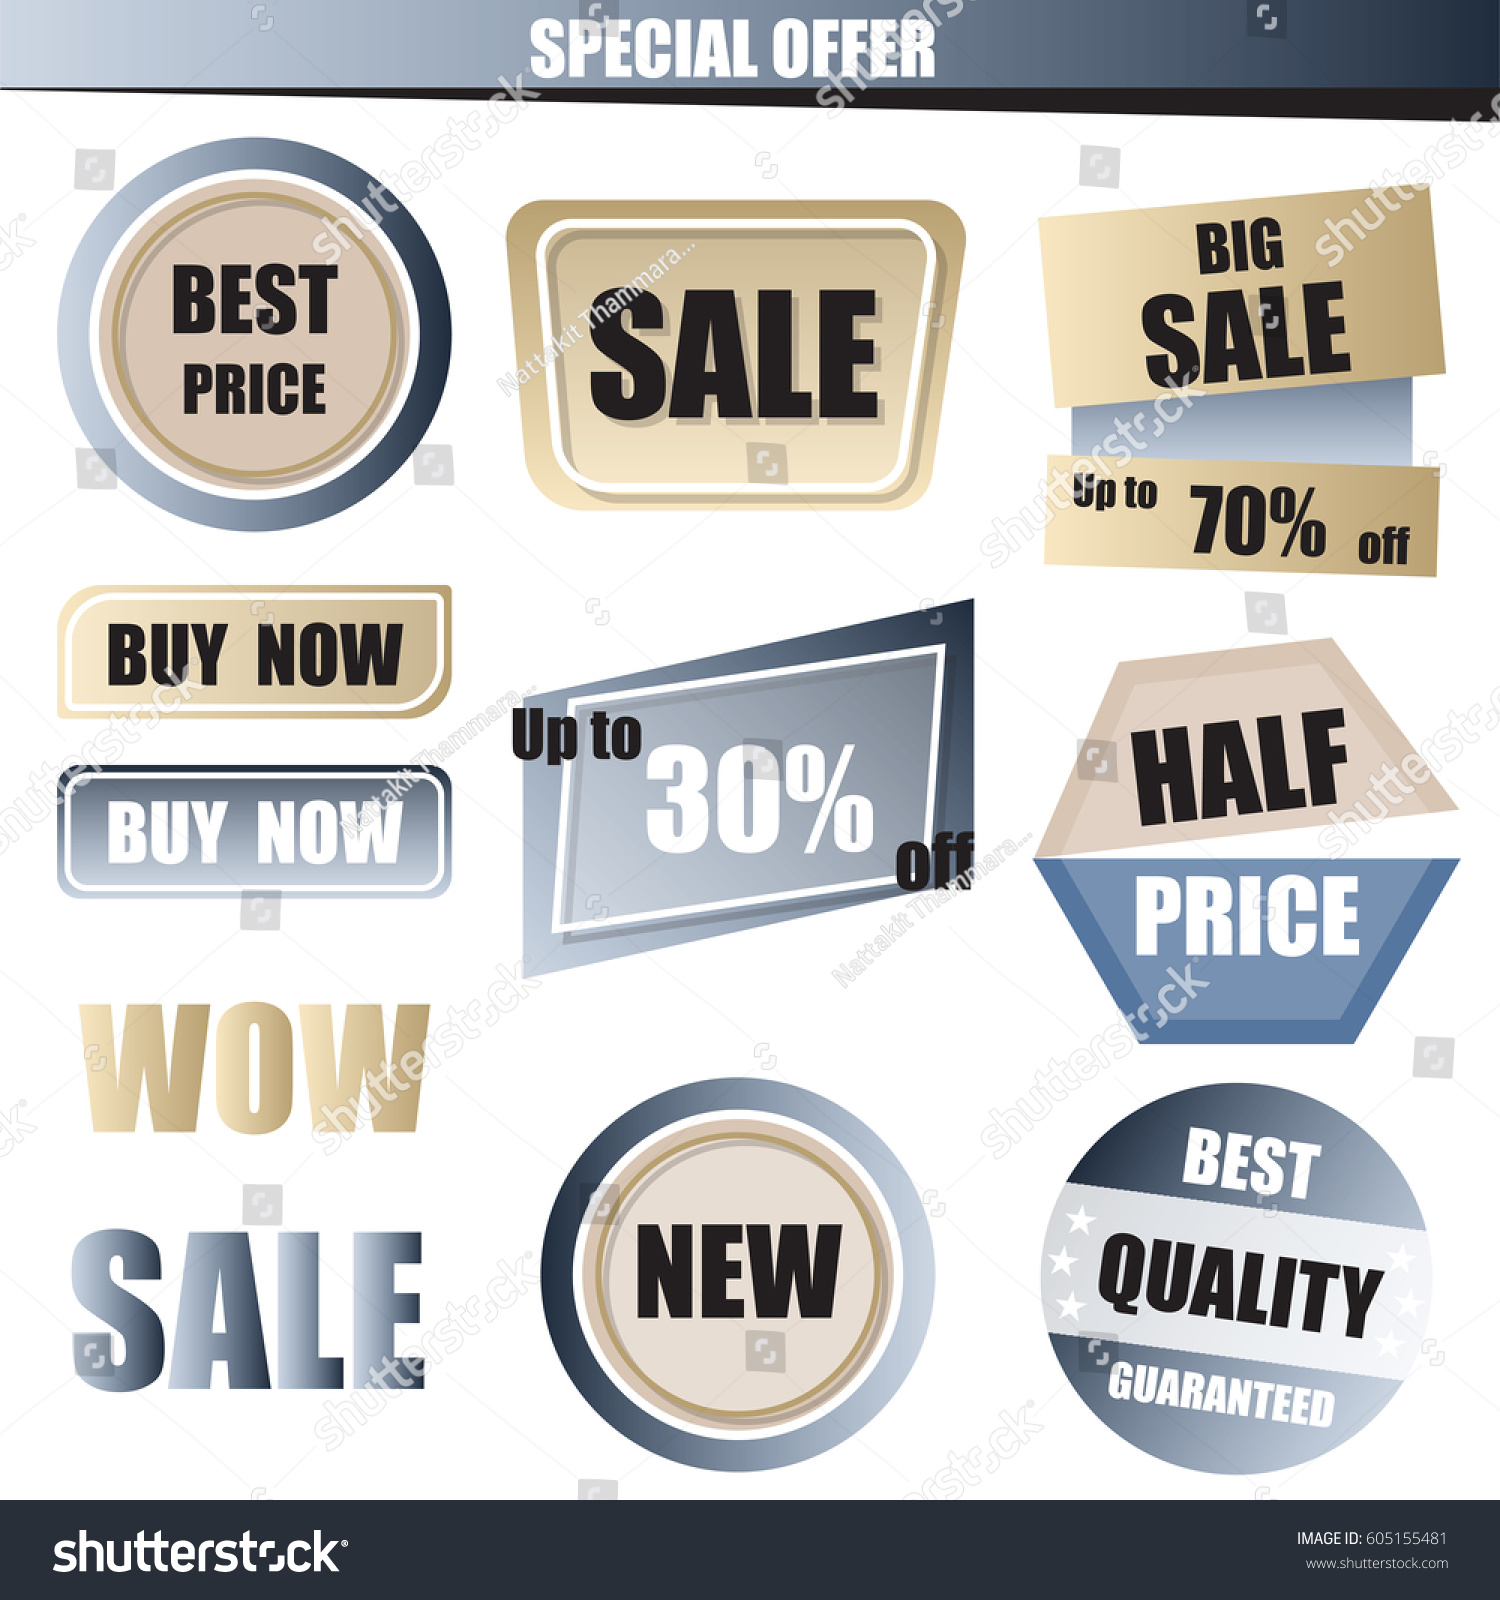 How to buy gold now - Set Of Sale Buy Now New Half Price Banner In Blue And Gold